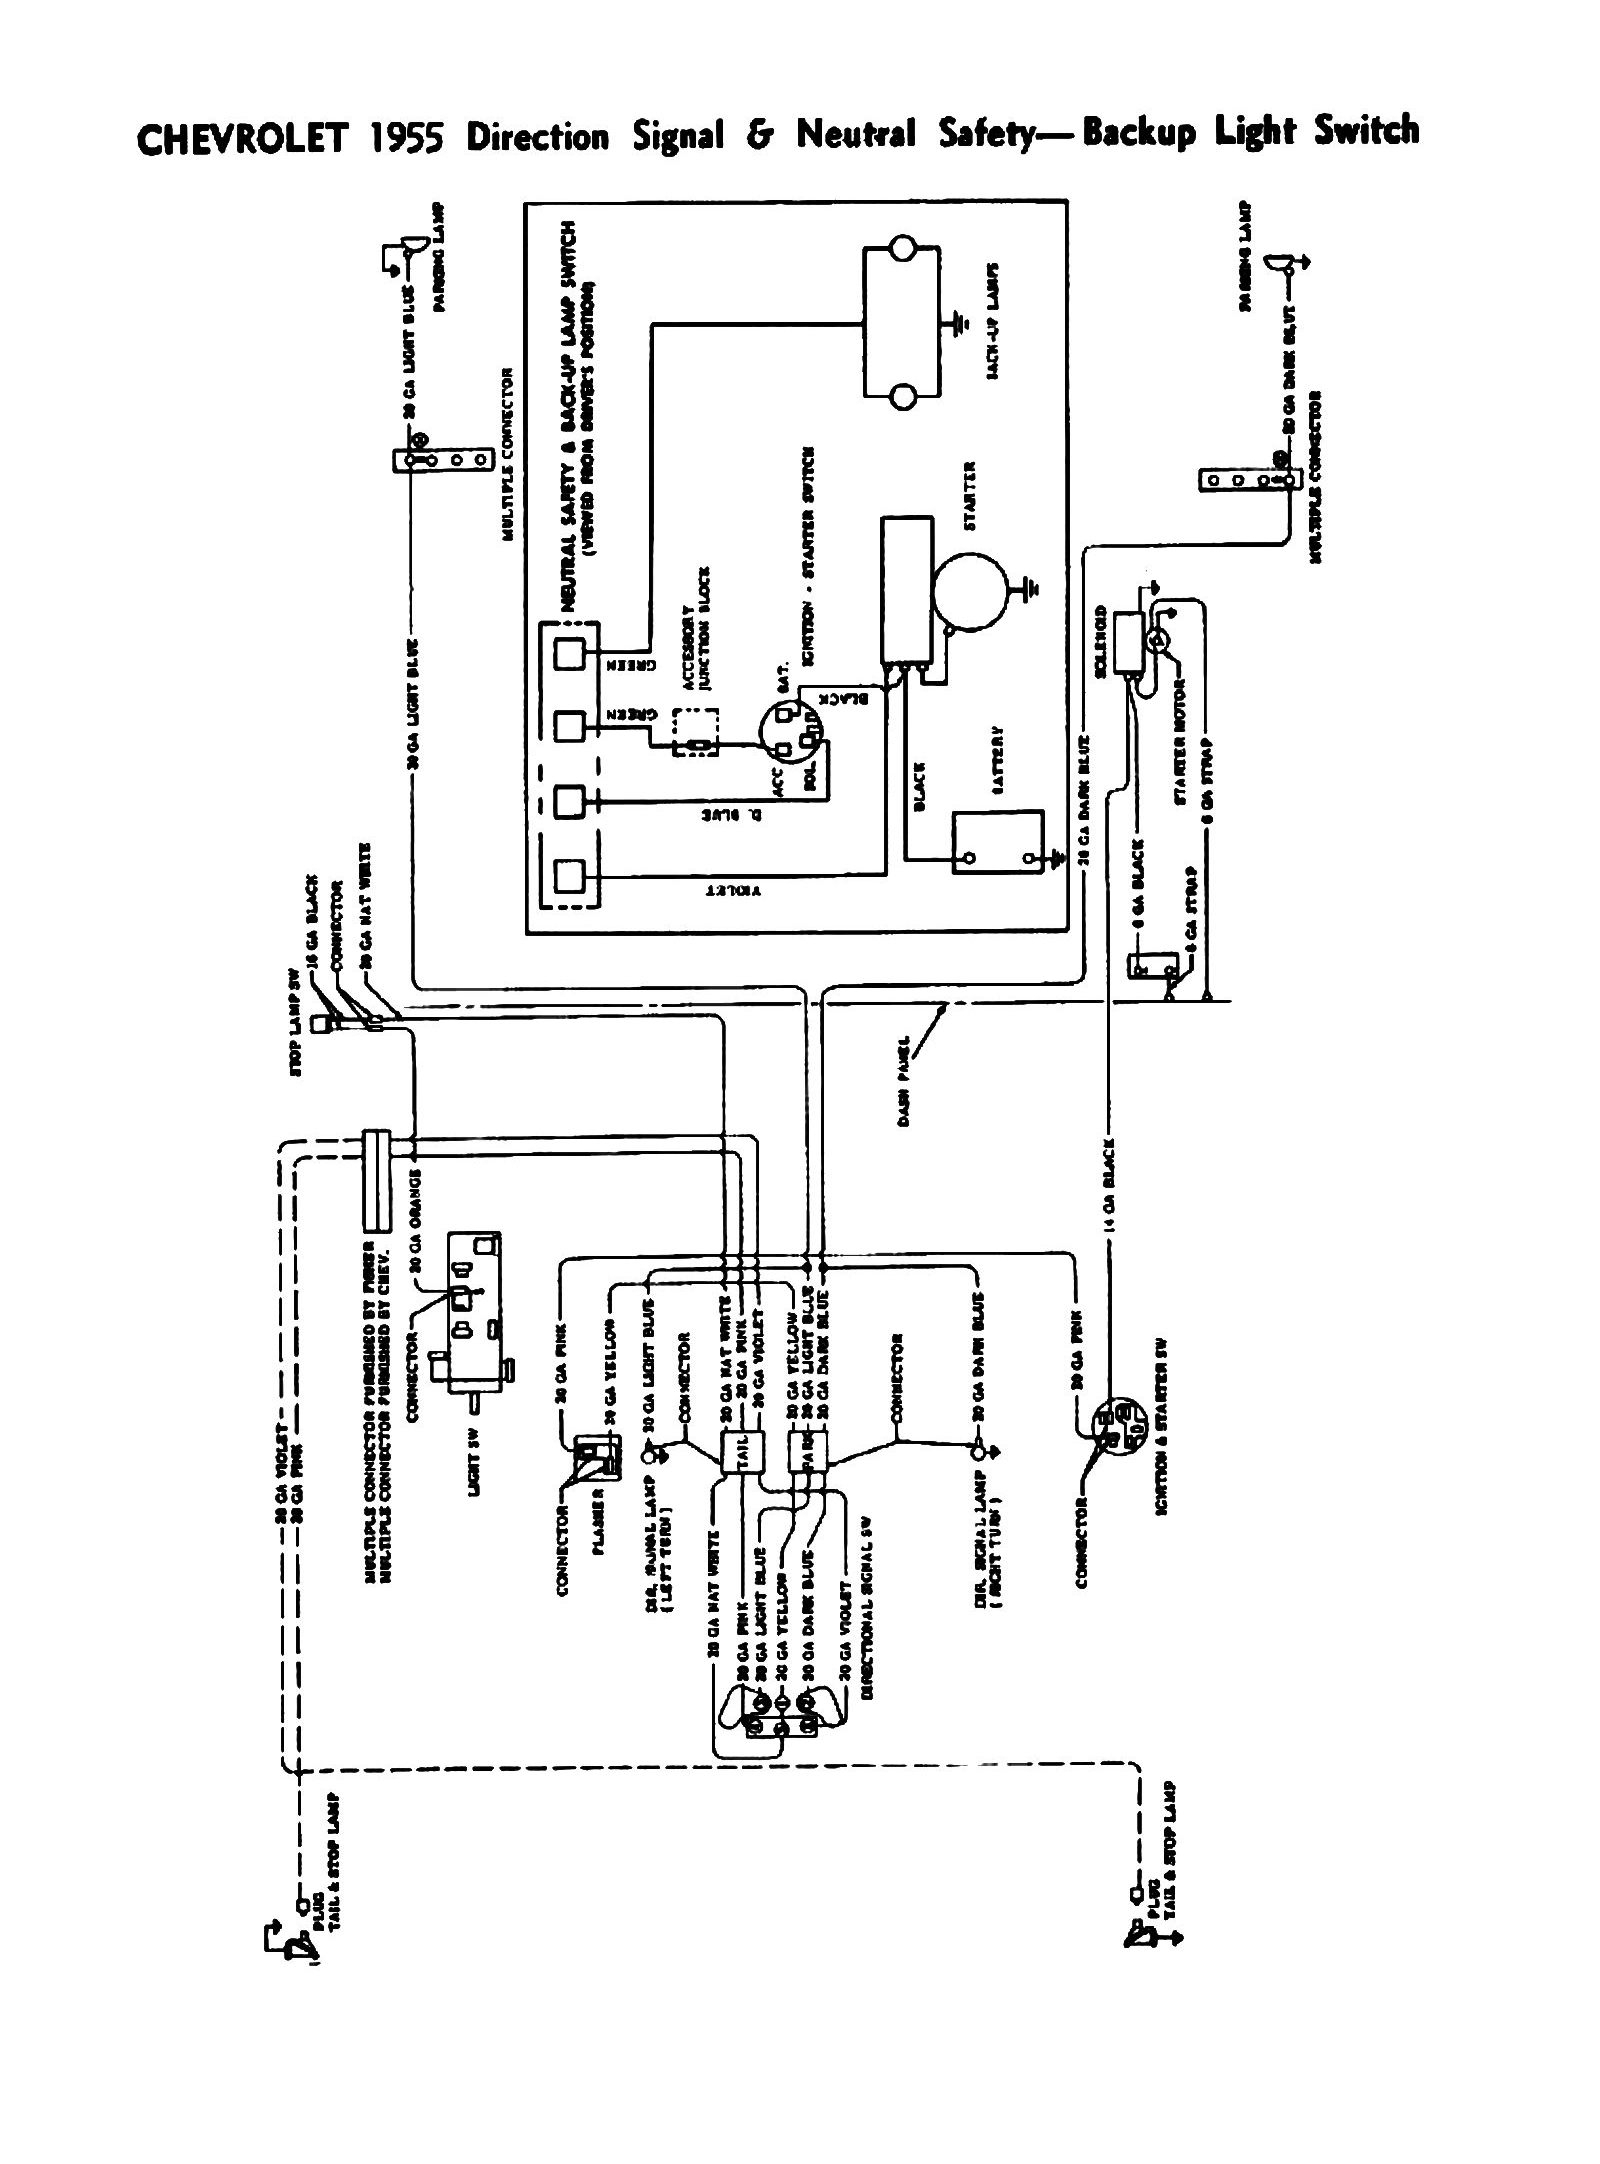 chevy turn signal switch wiring diagram Download-Ignition Switch Wiring Diagram Chevy Wiring Diagram Wiring Diagram Turn Signal Switch Wiring Diagram Inspirational 13-m